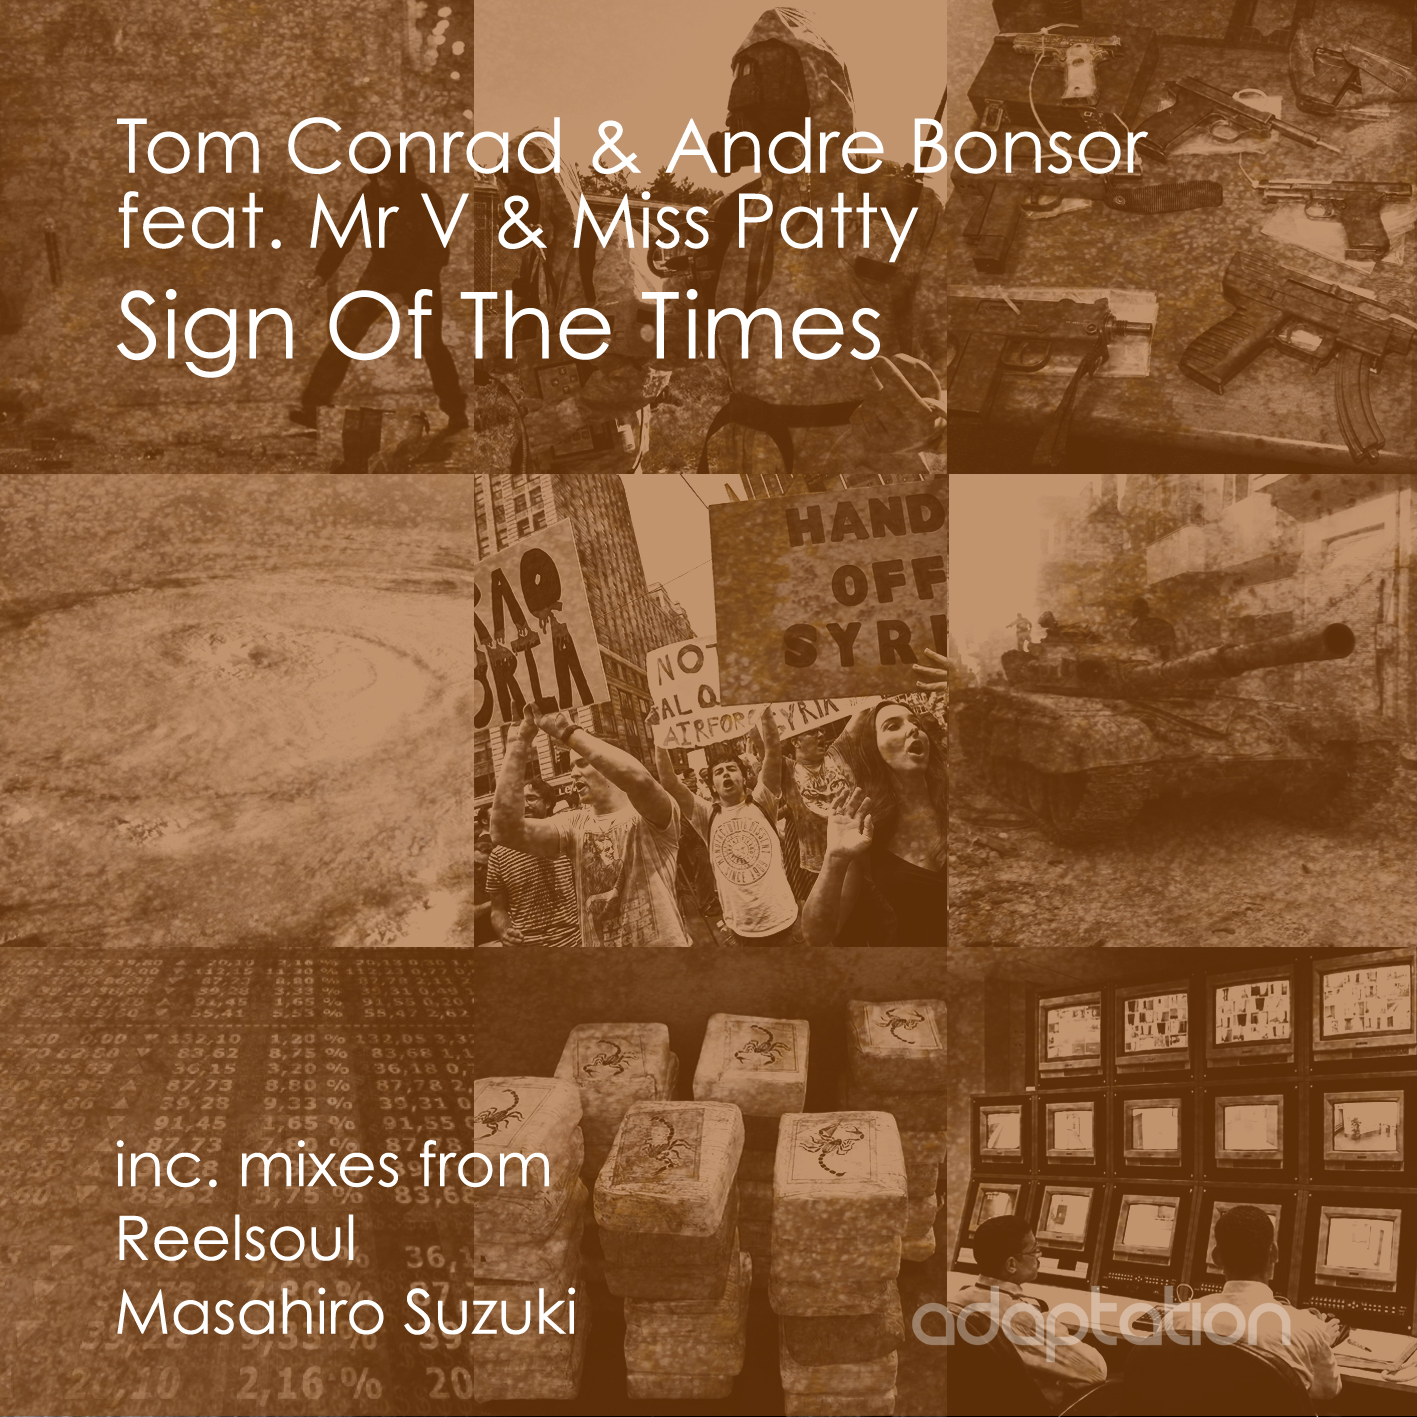 Tom Conrad & Andre Bonsor - Sign Of The Times